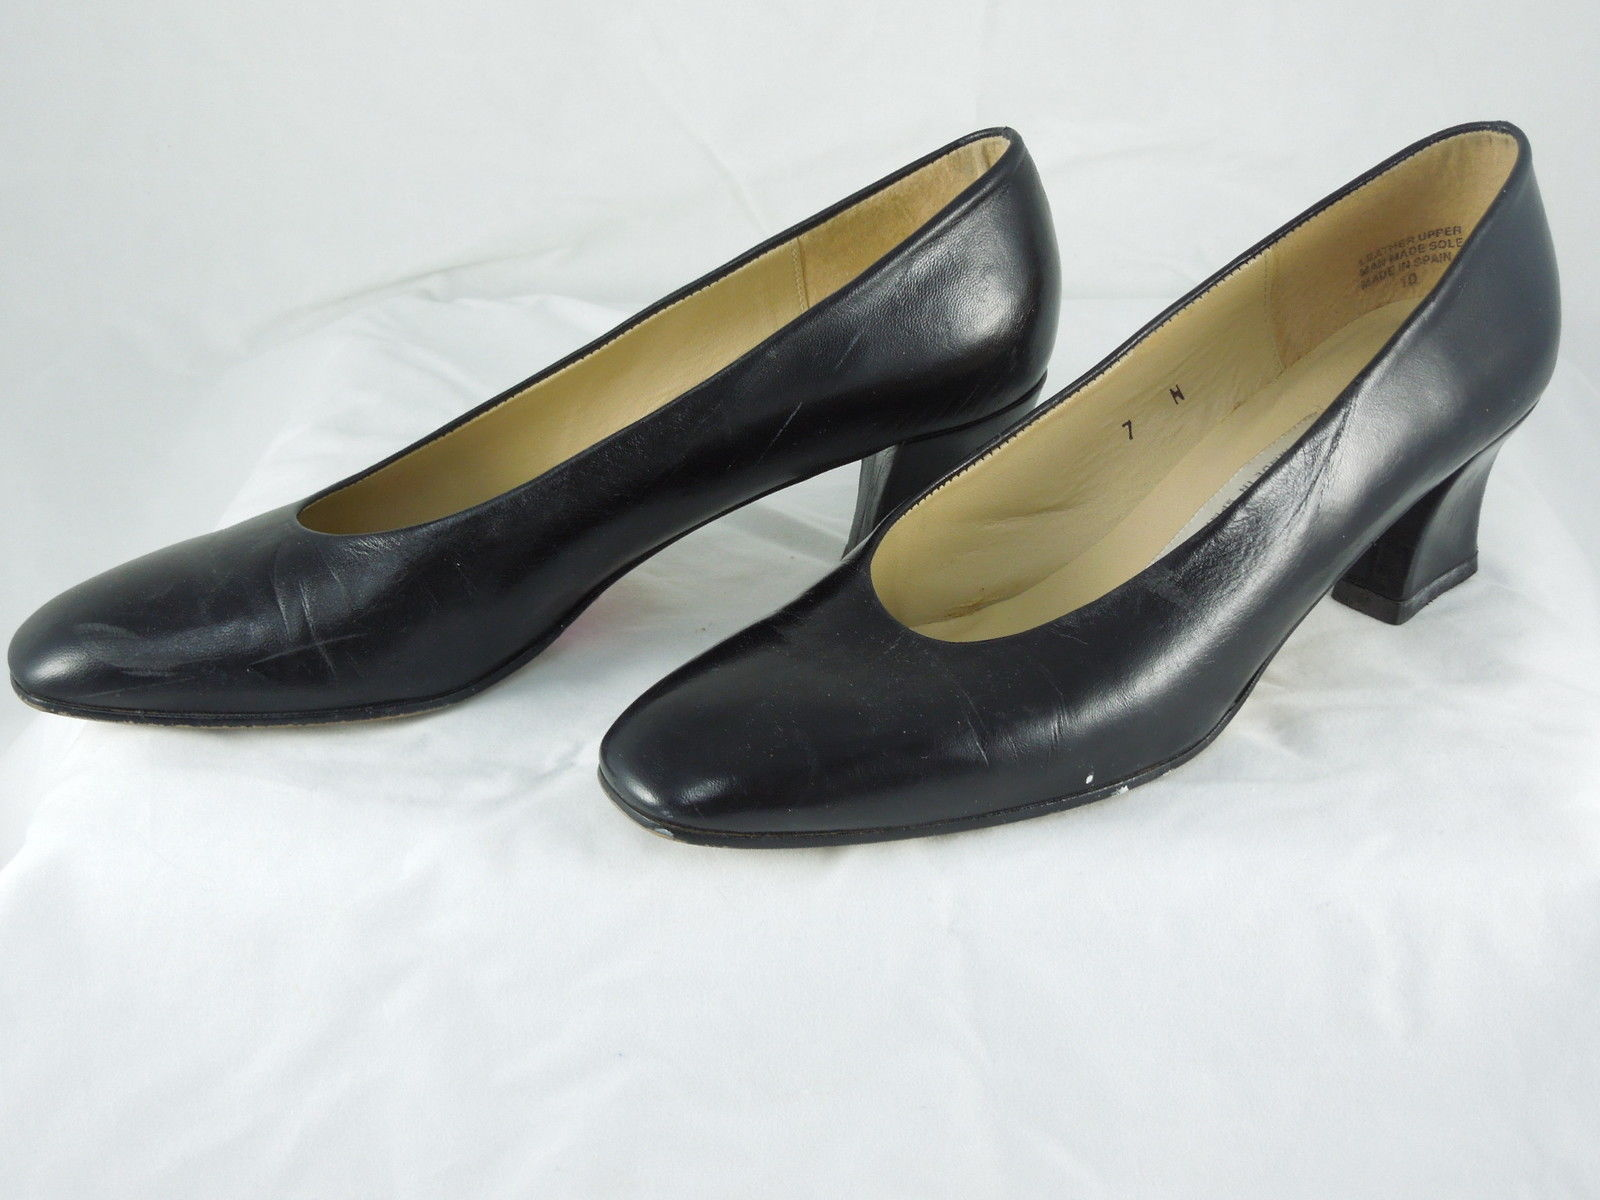 LADIES IMPORTED ETIENNE AIGNER Black Leather CASUAL WORK PUMPS rounded toe 7N